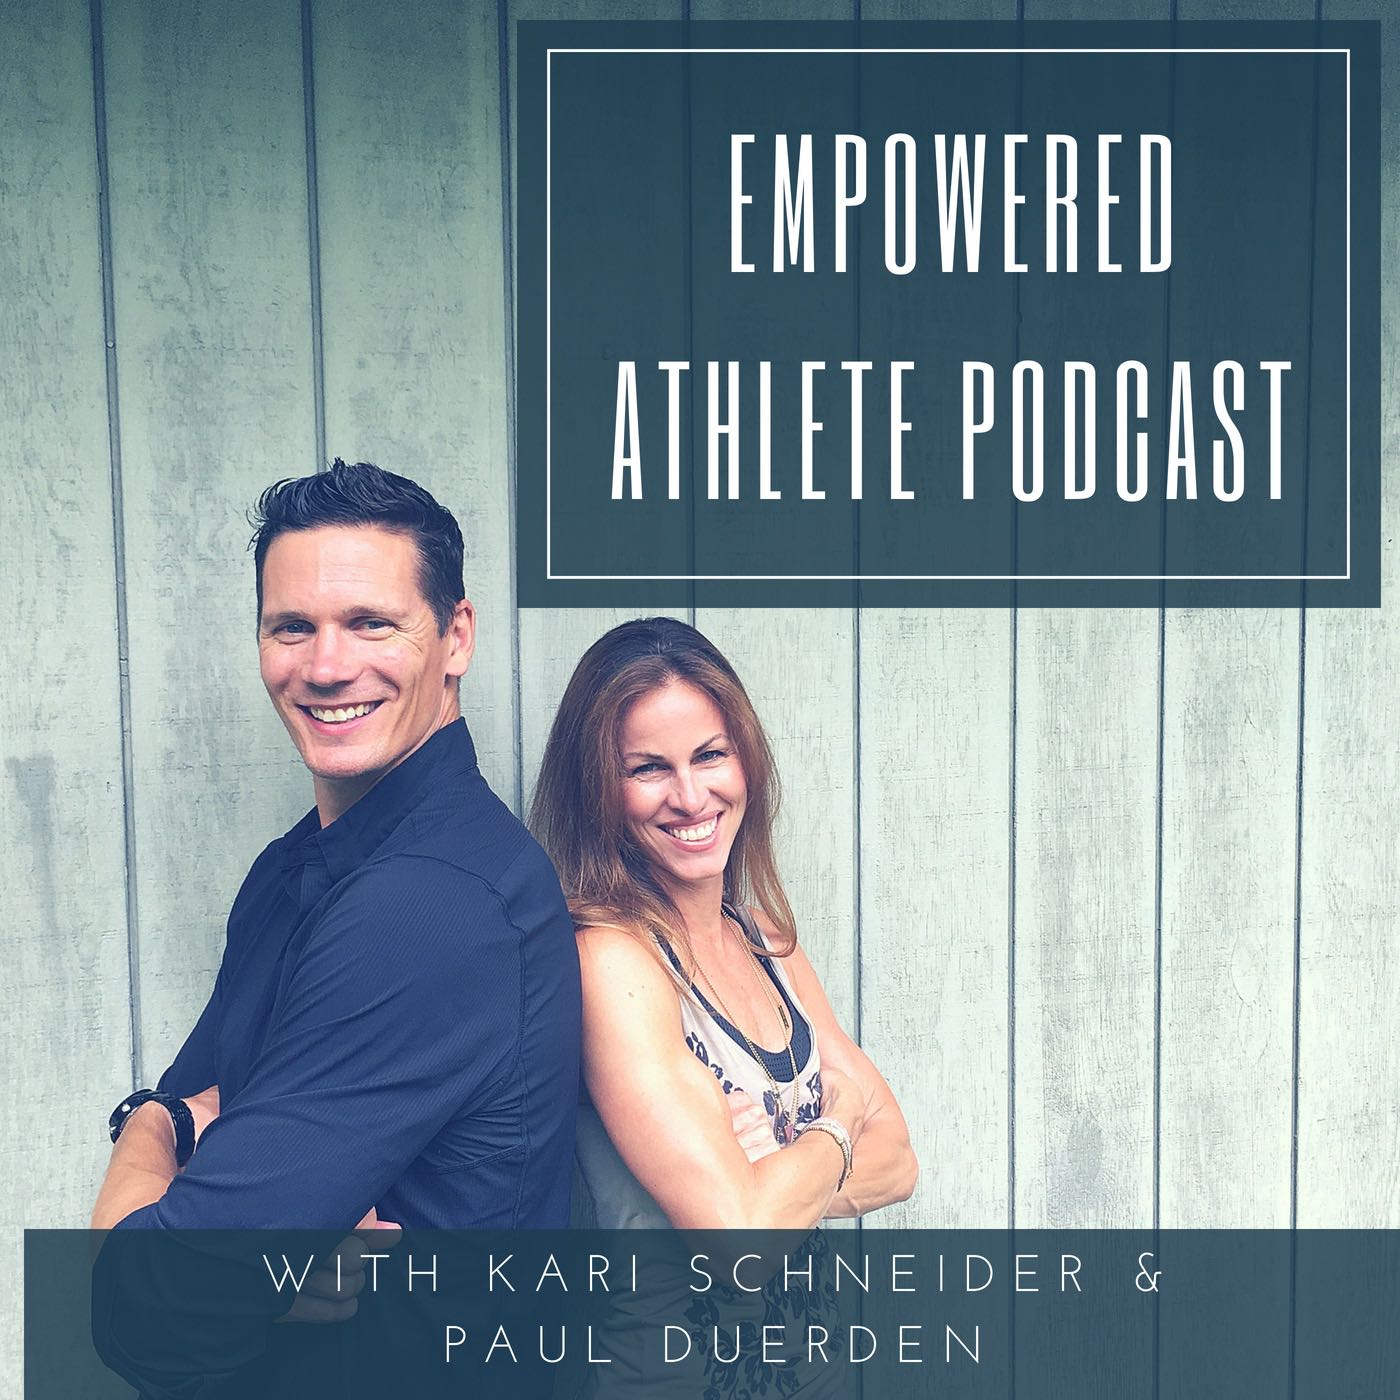 Empowered Athlete Podcast